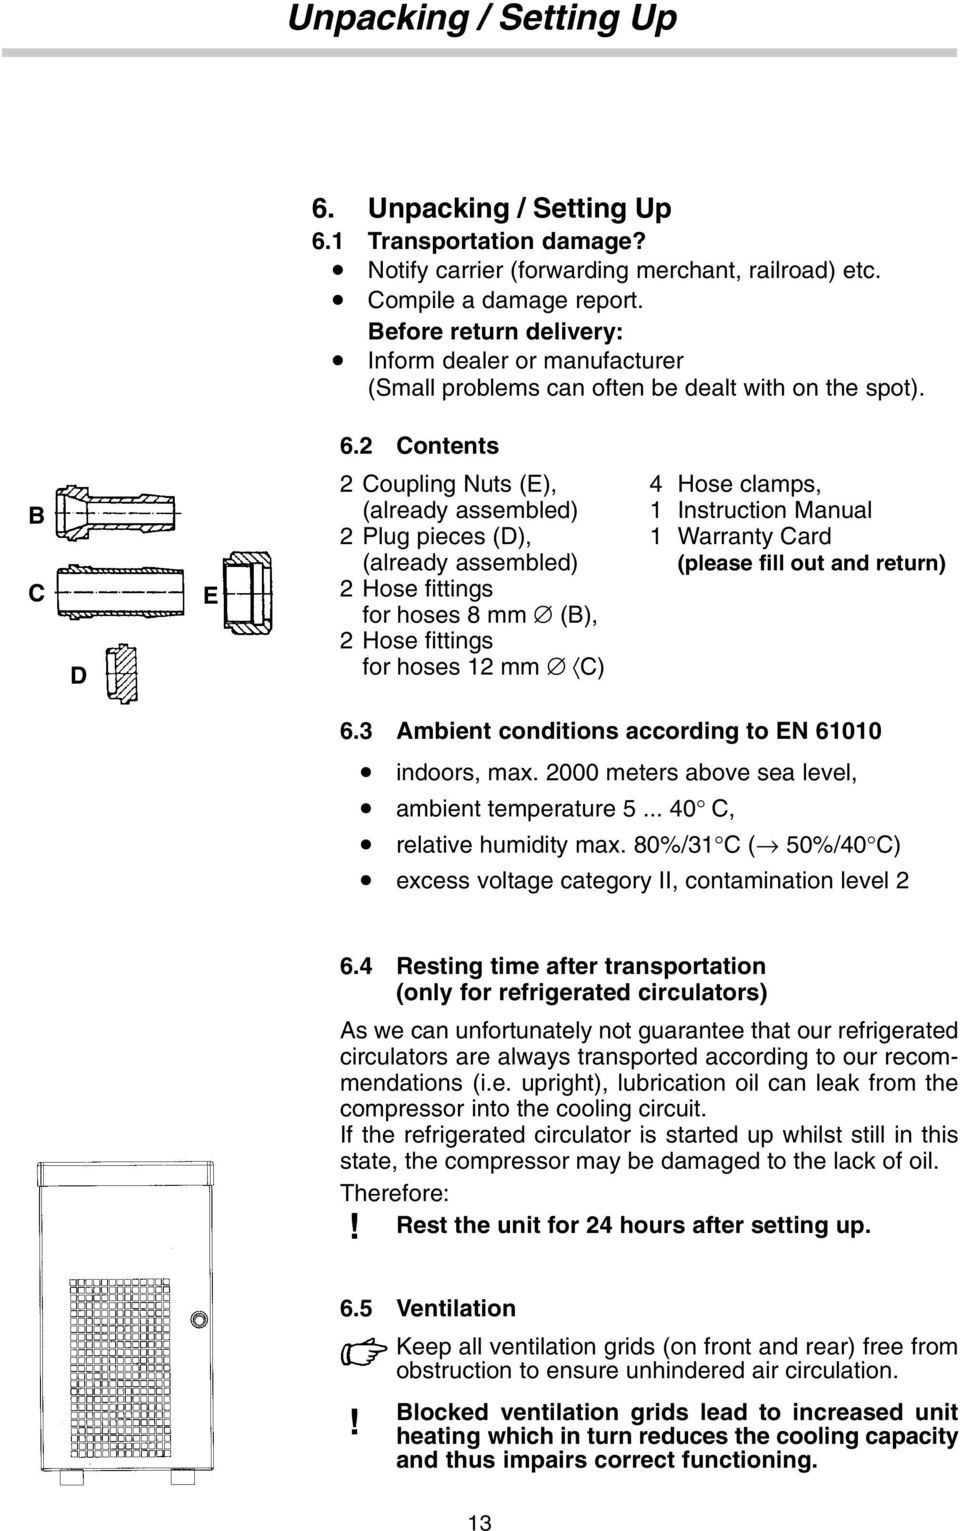 2 Contents B C D E 2 Coupling Nuts (E), 4 Hose clamps, (already assembled) 1 Instruction Manual 2 Plug pieces (D), 1 Warranty Card (already assembled) (please fill out and return) 2 Hose fittings for